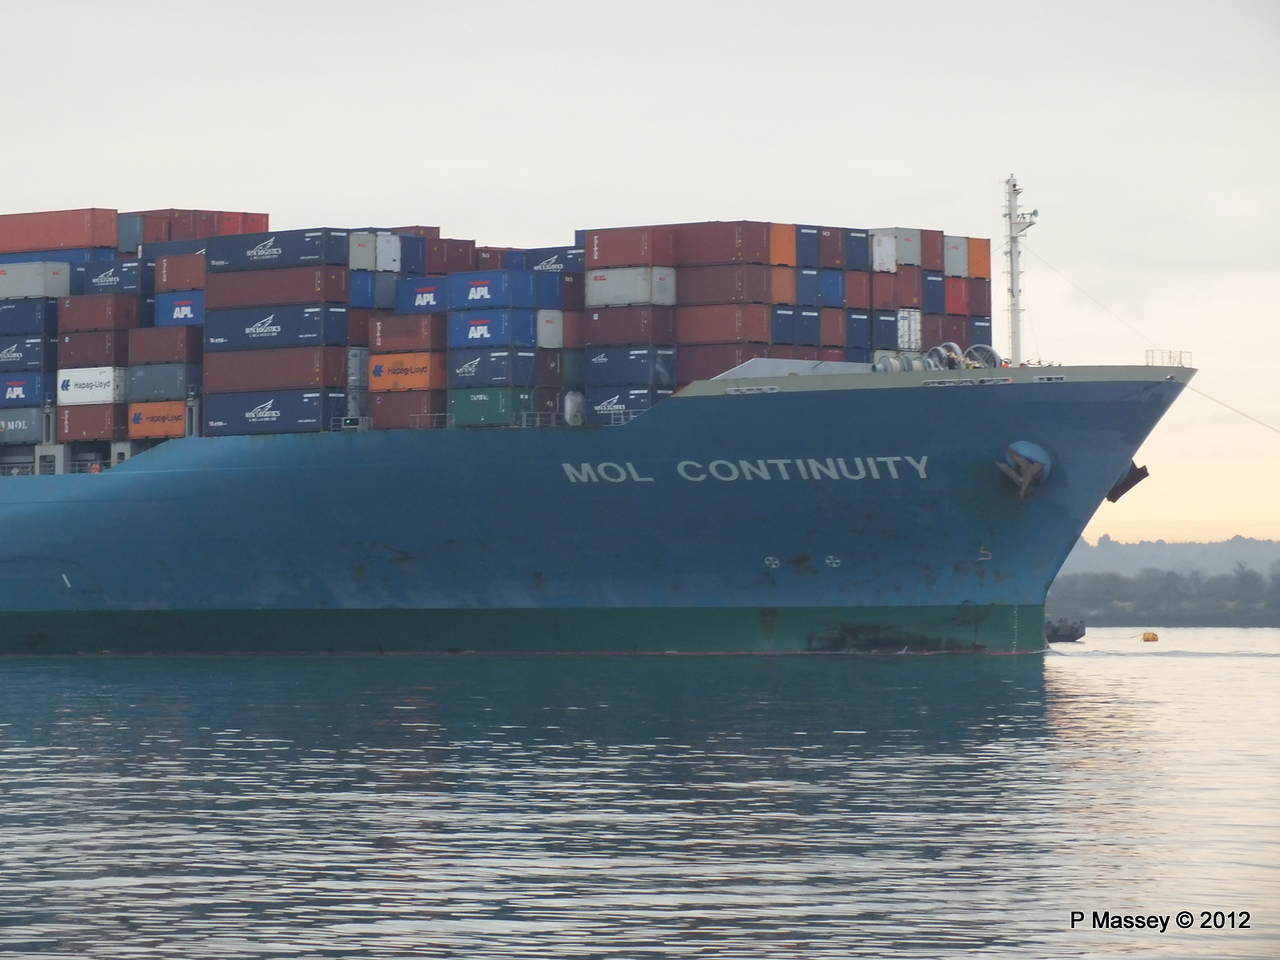 MOL CONTINUITY PDM 12-12-2012 10-08-13